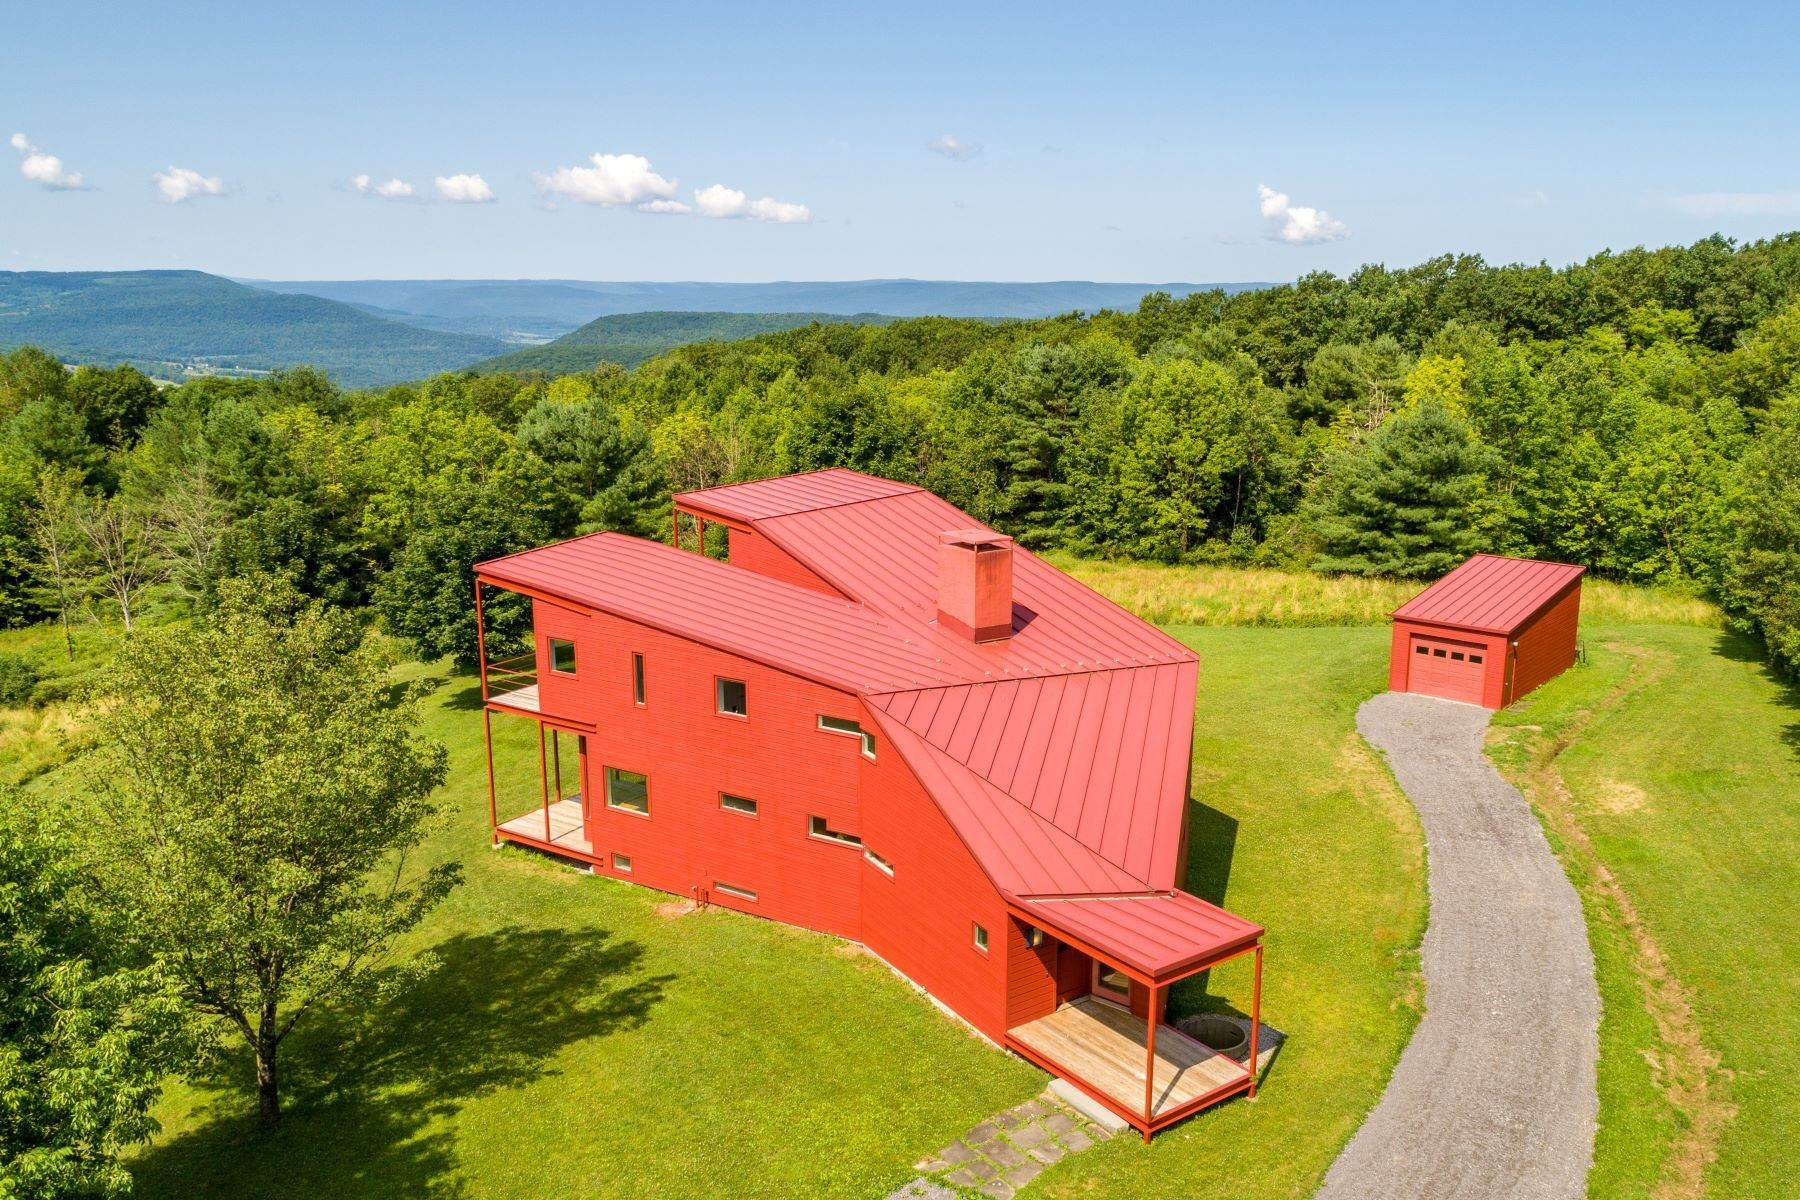 Single Family Homes for Sale at Y House in the Catskills 434 Lawton Hollow Rd Middleburgh, New York 12122 United States